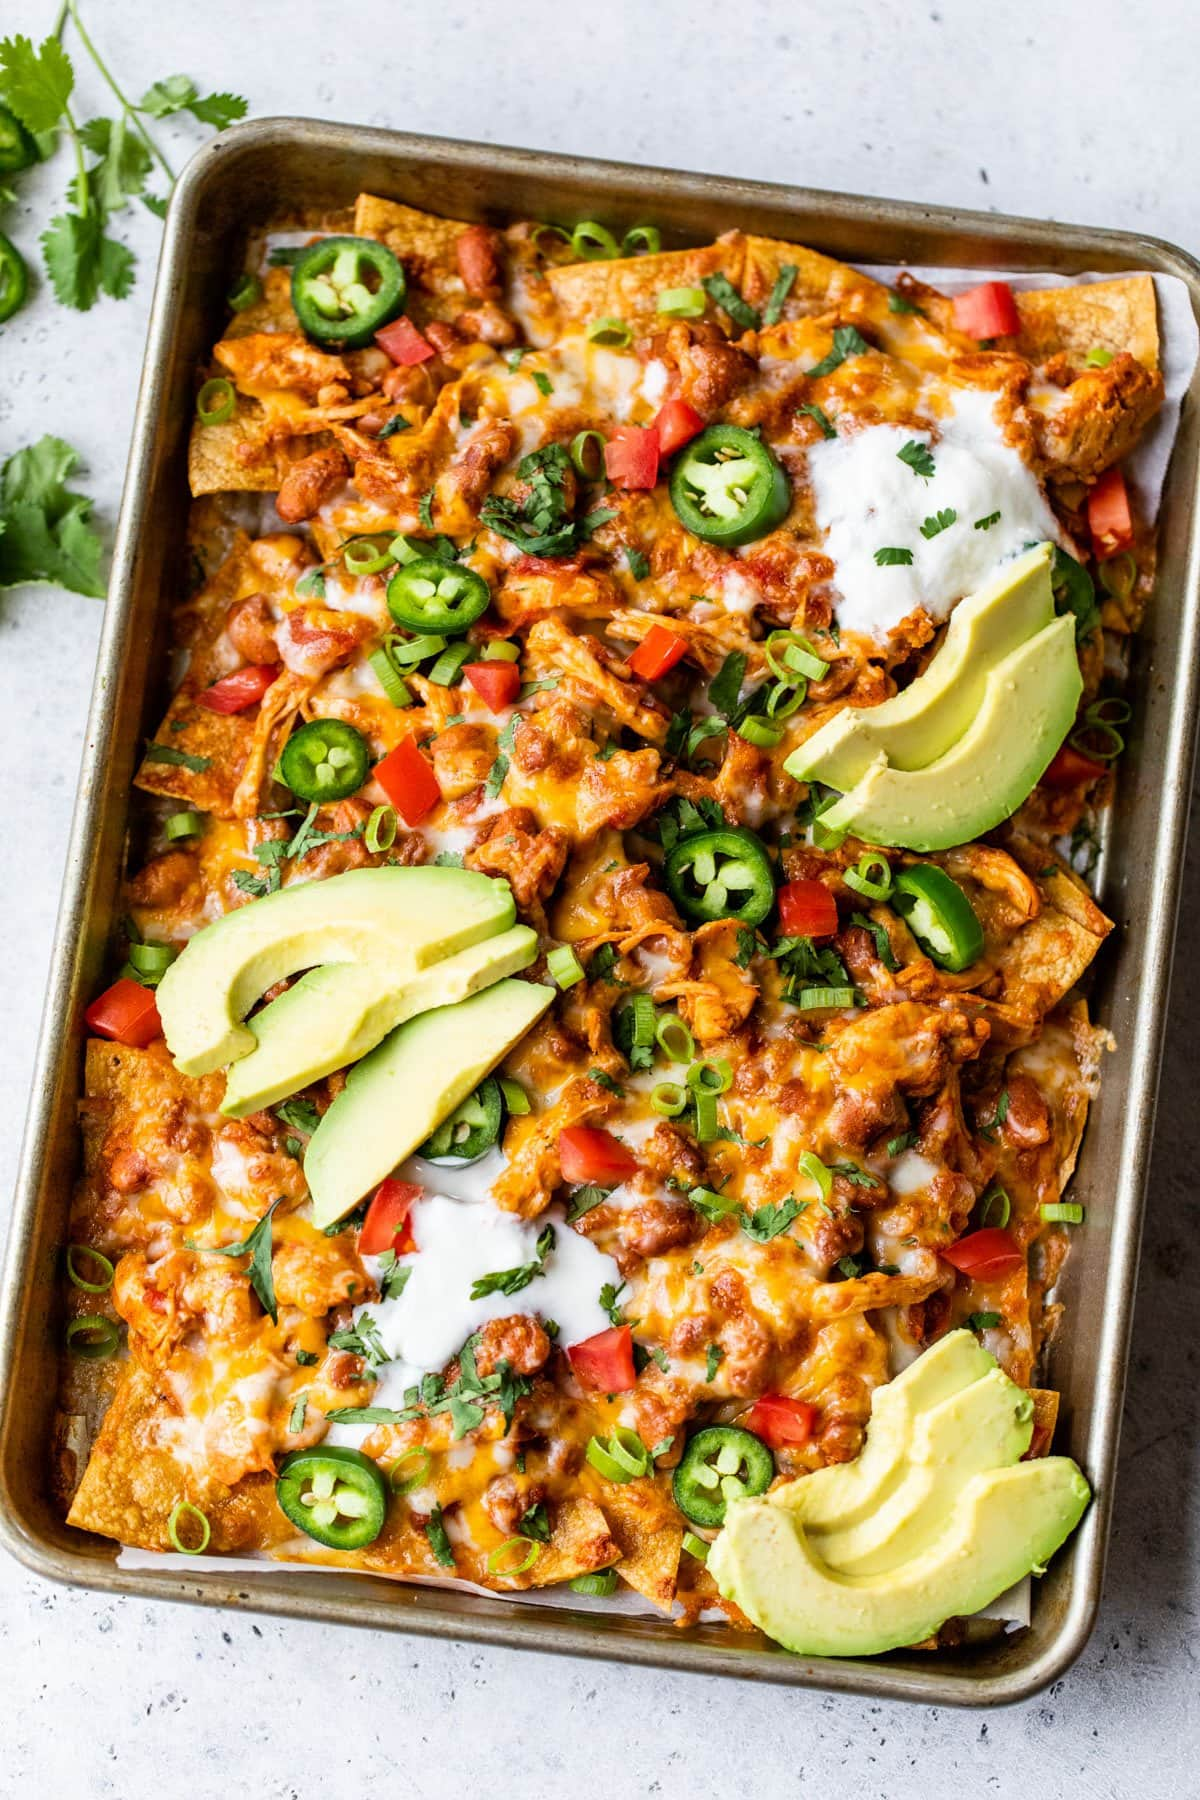 These Crock Pot Chicken Healthy Nachos are so quick and easy to make in the slow cooker. Perfect appetizer for a party, but healthy and filling enough for a weeknight meal! @wellplated